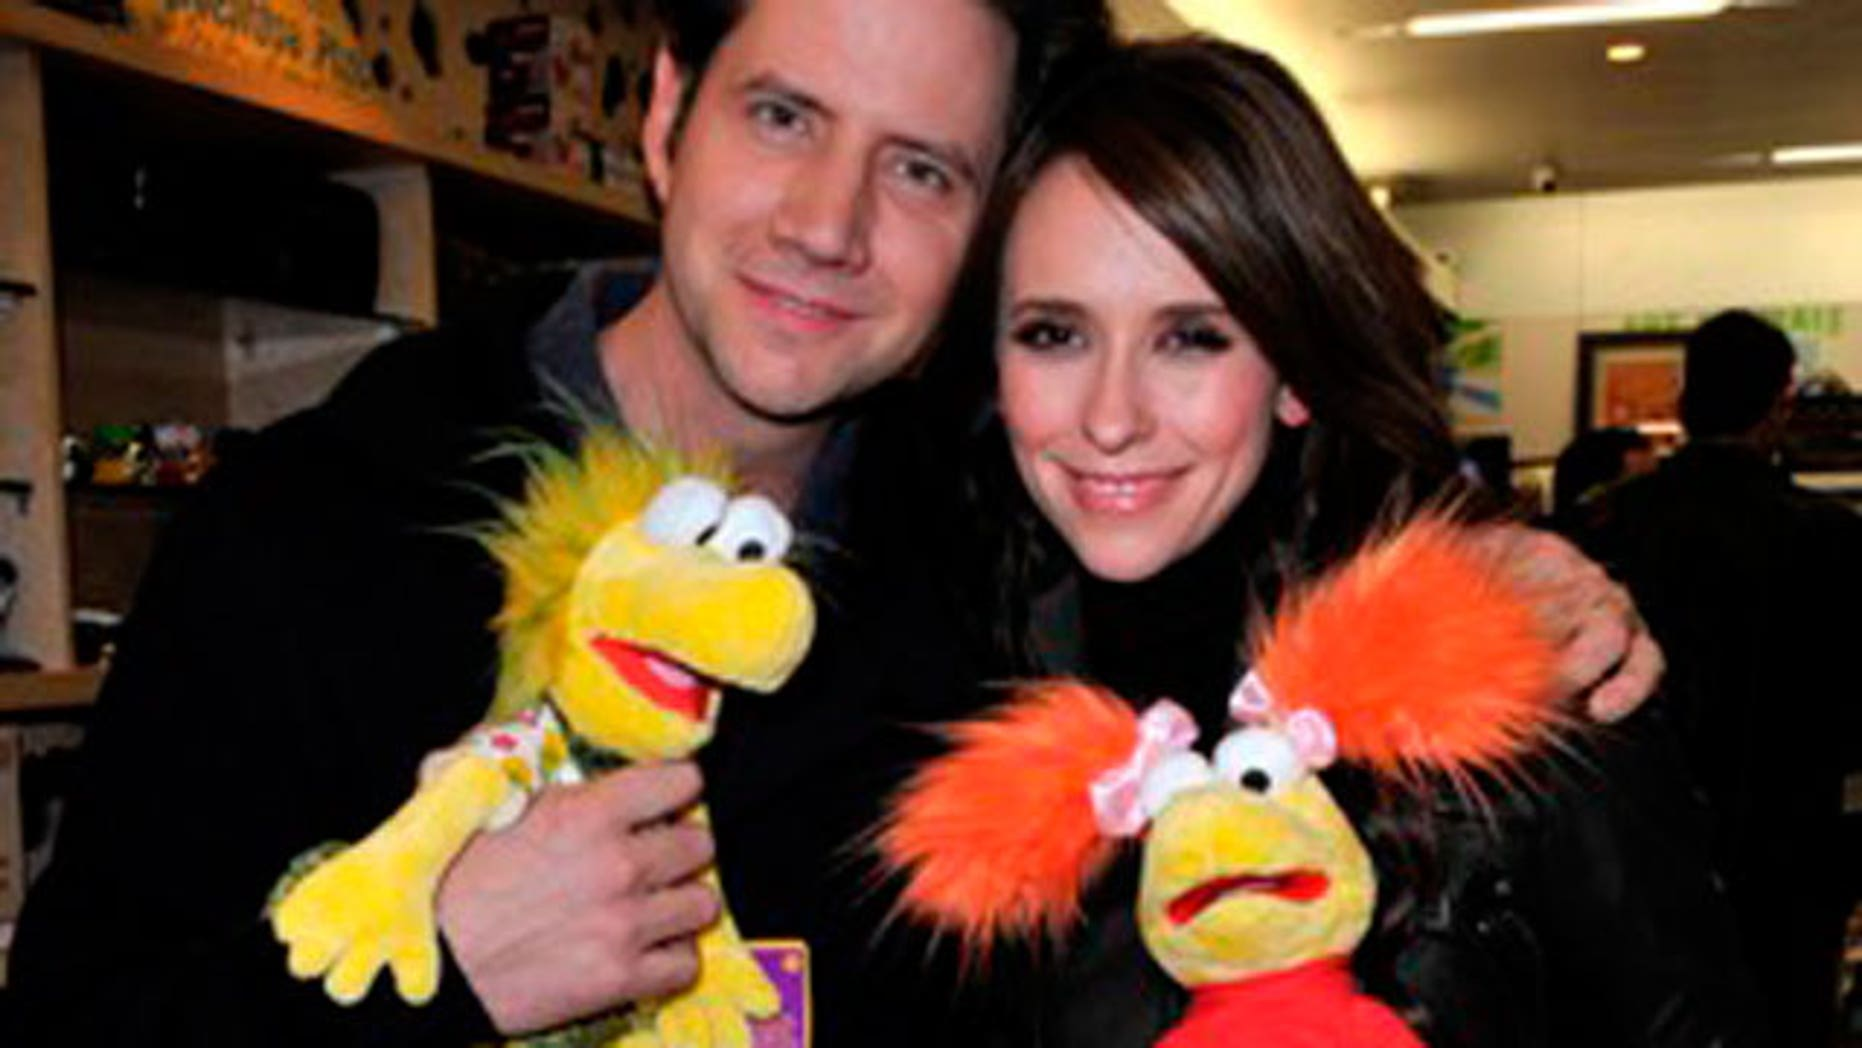 Jennifer Love Hewitt and beau Jamie Kennedy at the special presentation of the Fraggle Rock Volkswagon Routan at the Fraggle Rock Clothing & Costume Jewelry Collection party at Kitson in L.A.